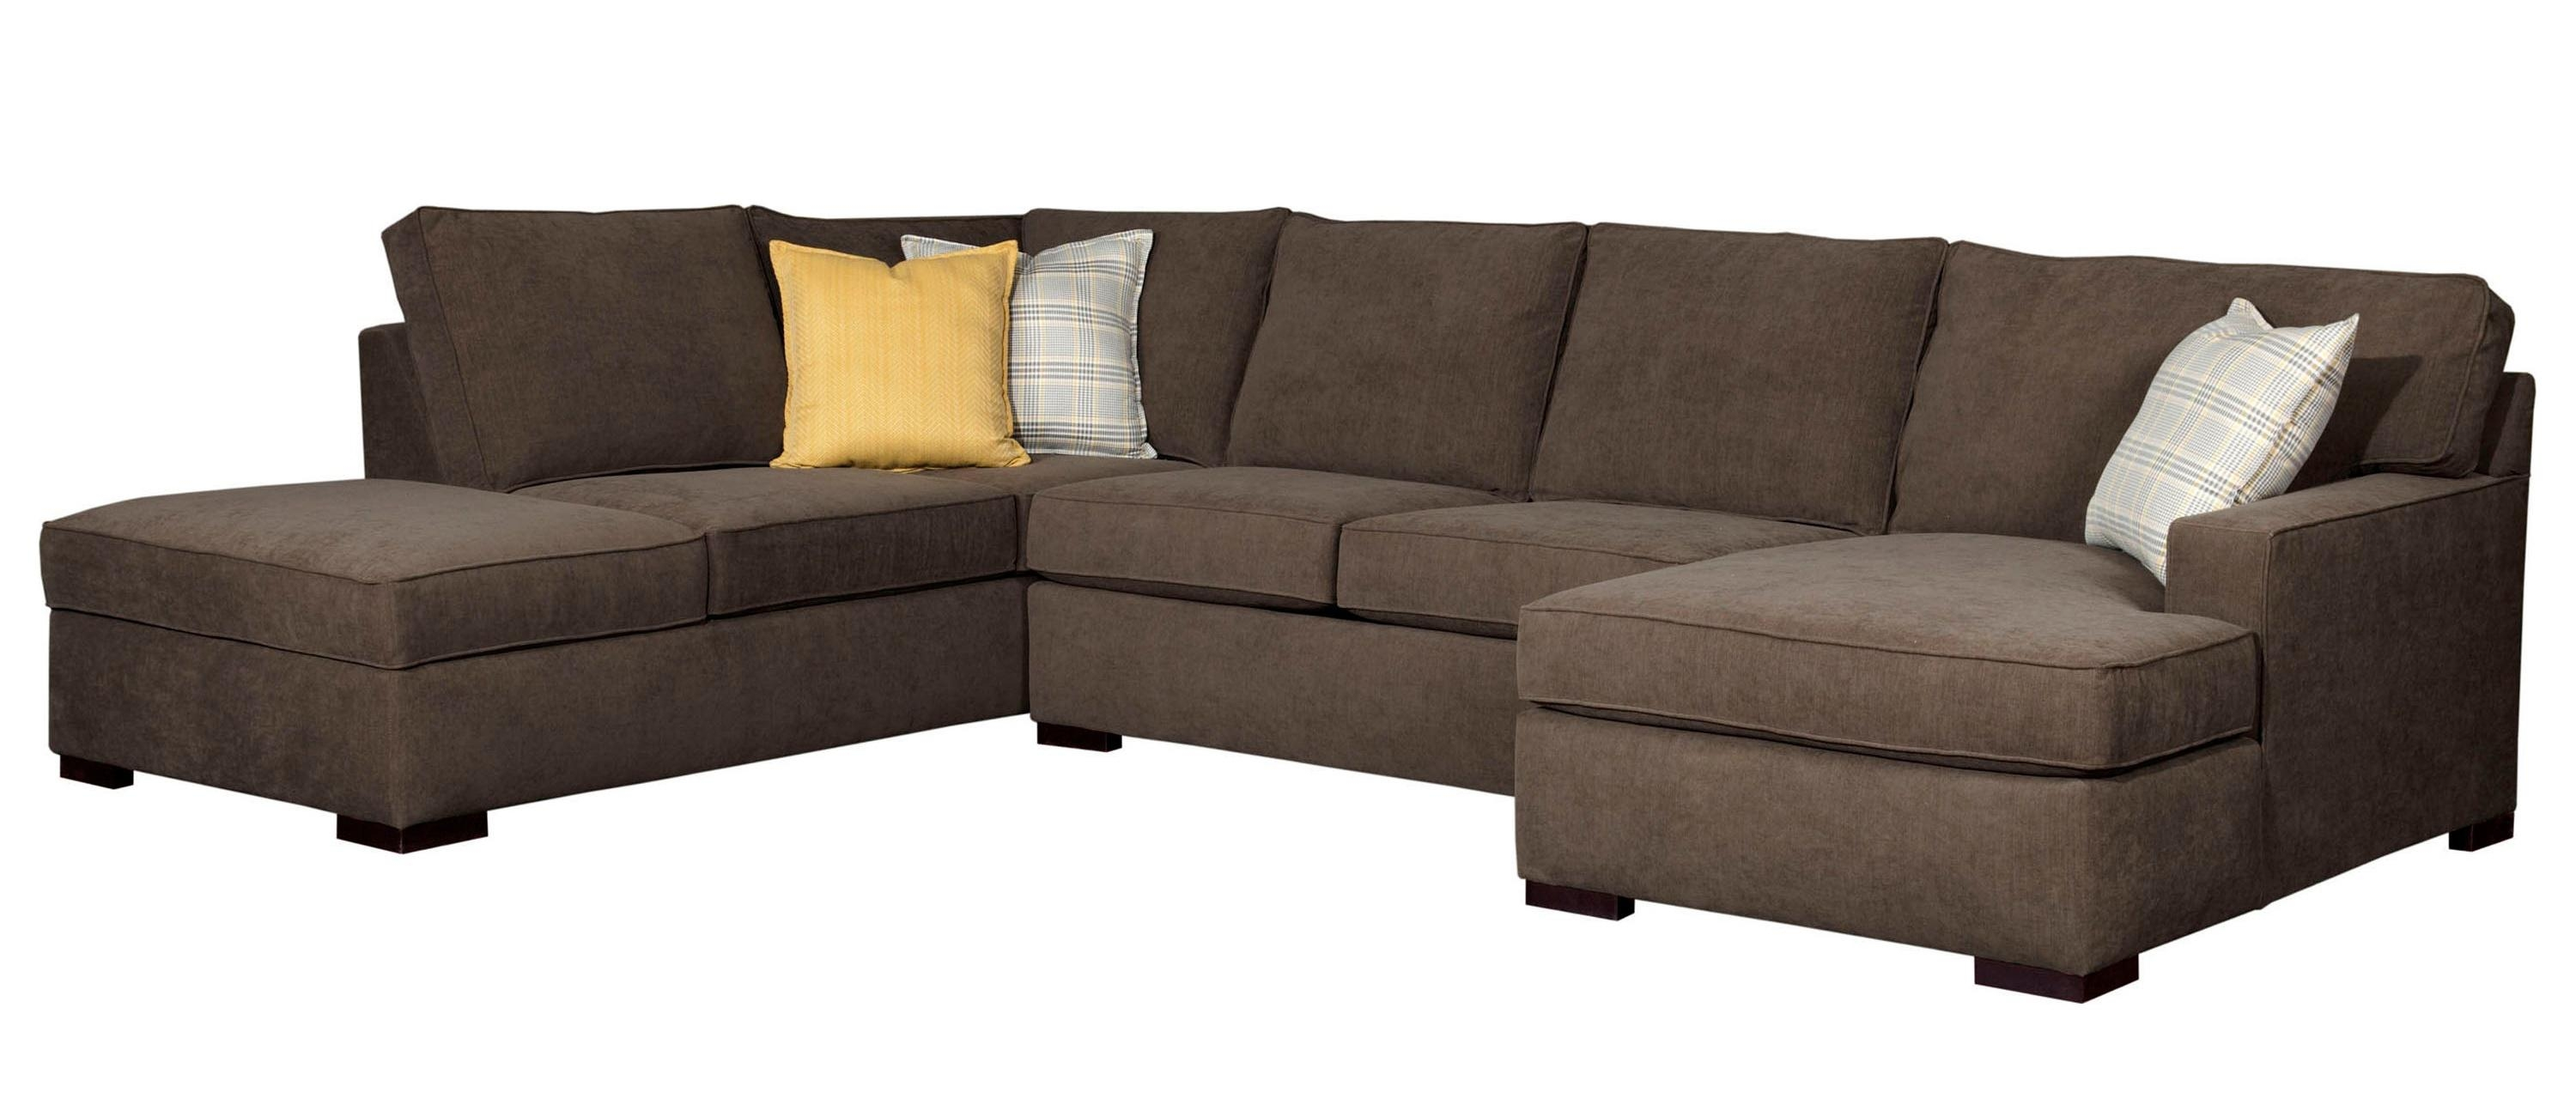 Raphael Contemporary Sectional Sofa With Raf Corner Storage Chaise With Broyhill Sectional Sofas (Image 12 of 15)